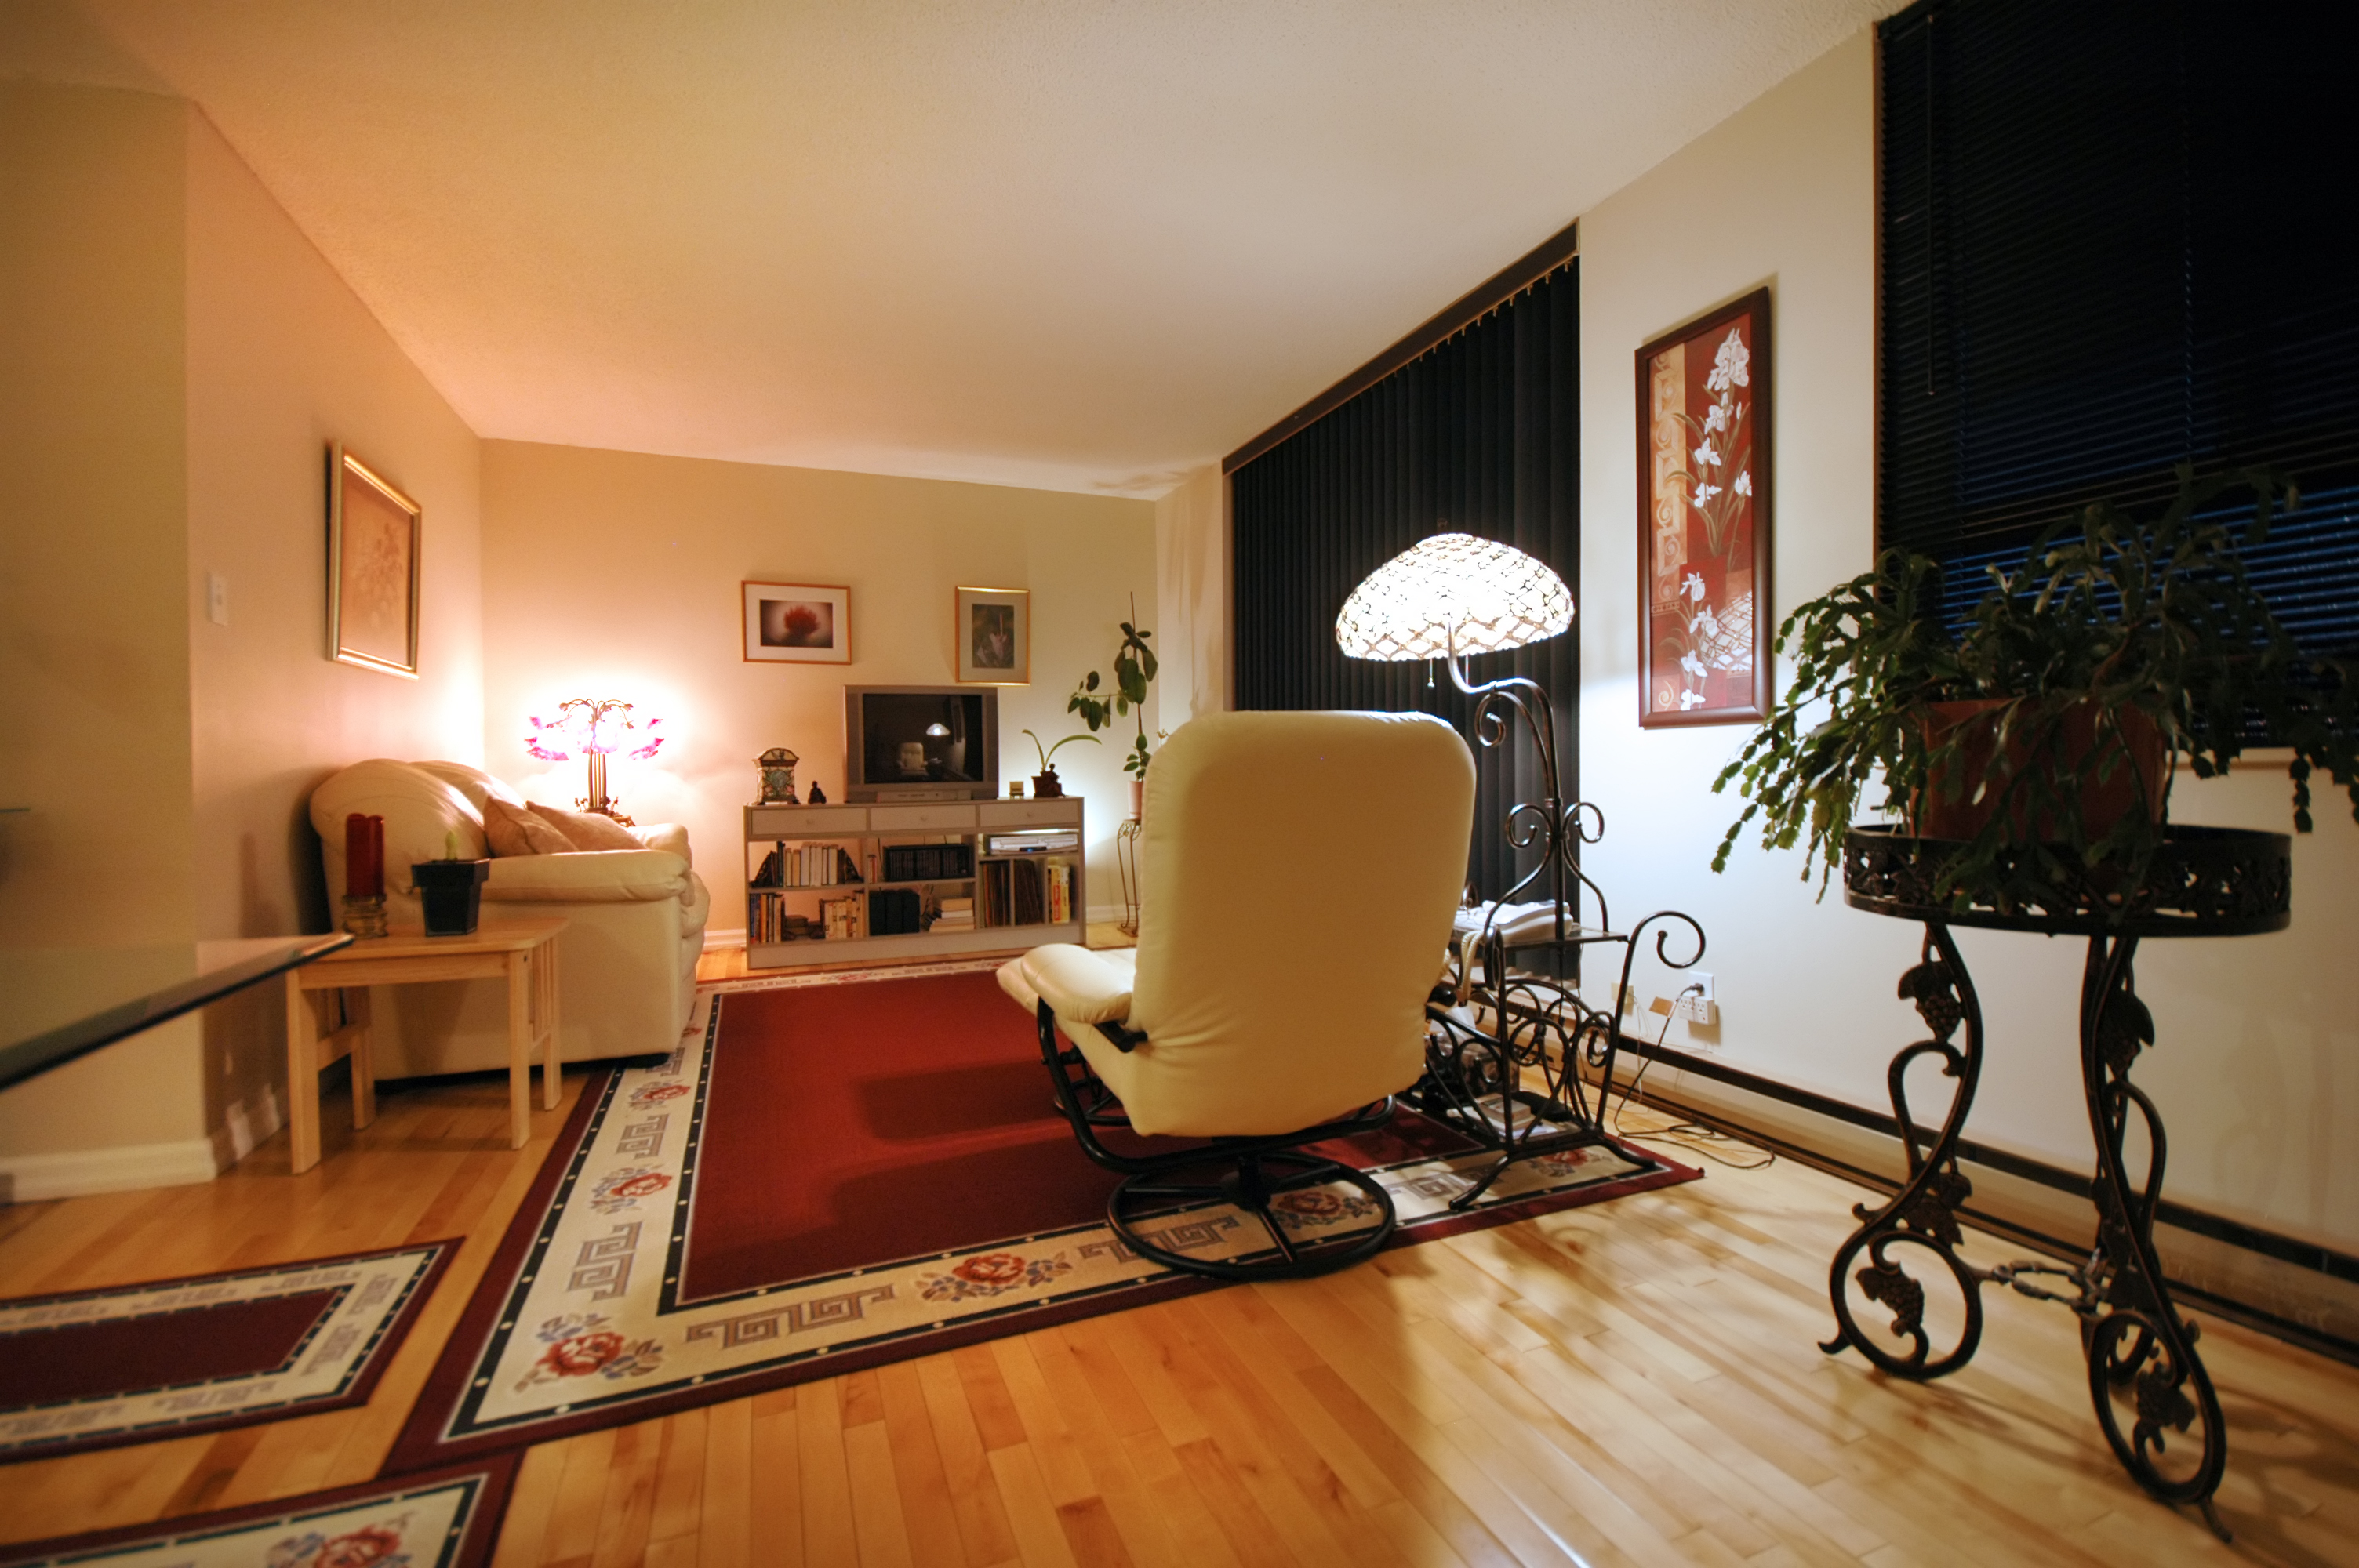 Hardwood Floors Living Room Model Www.ventnortourismi201508Awesomelivingro.